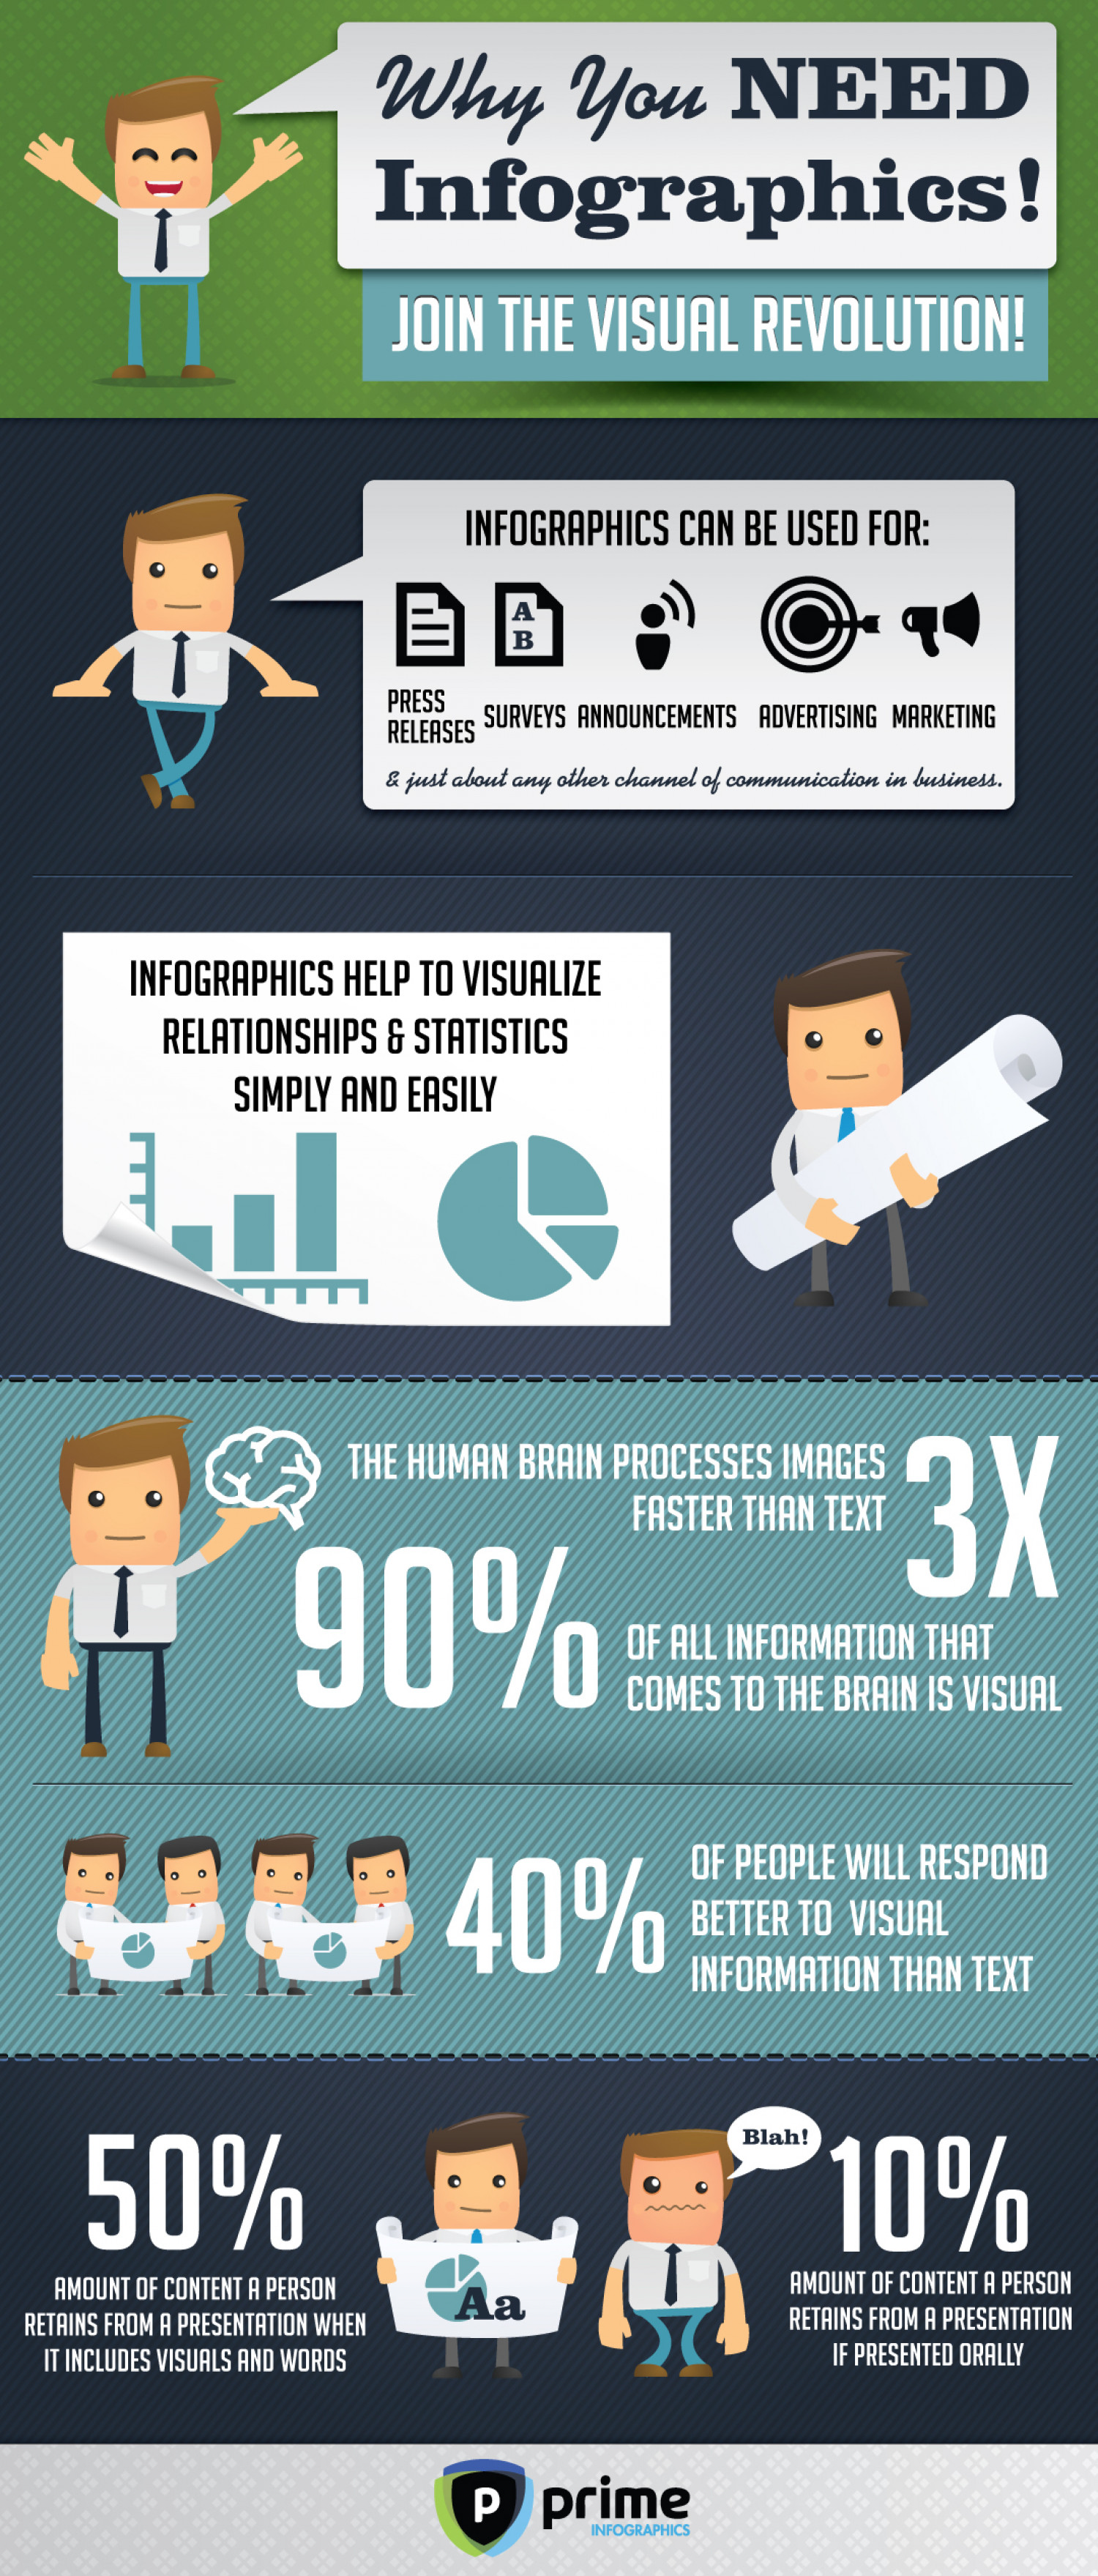 Why You Need Infographics Infographic